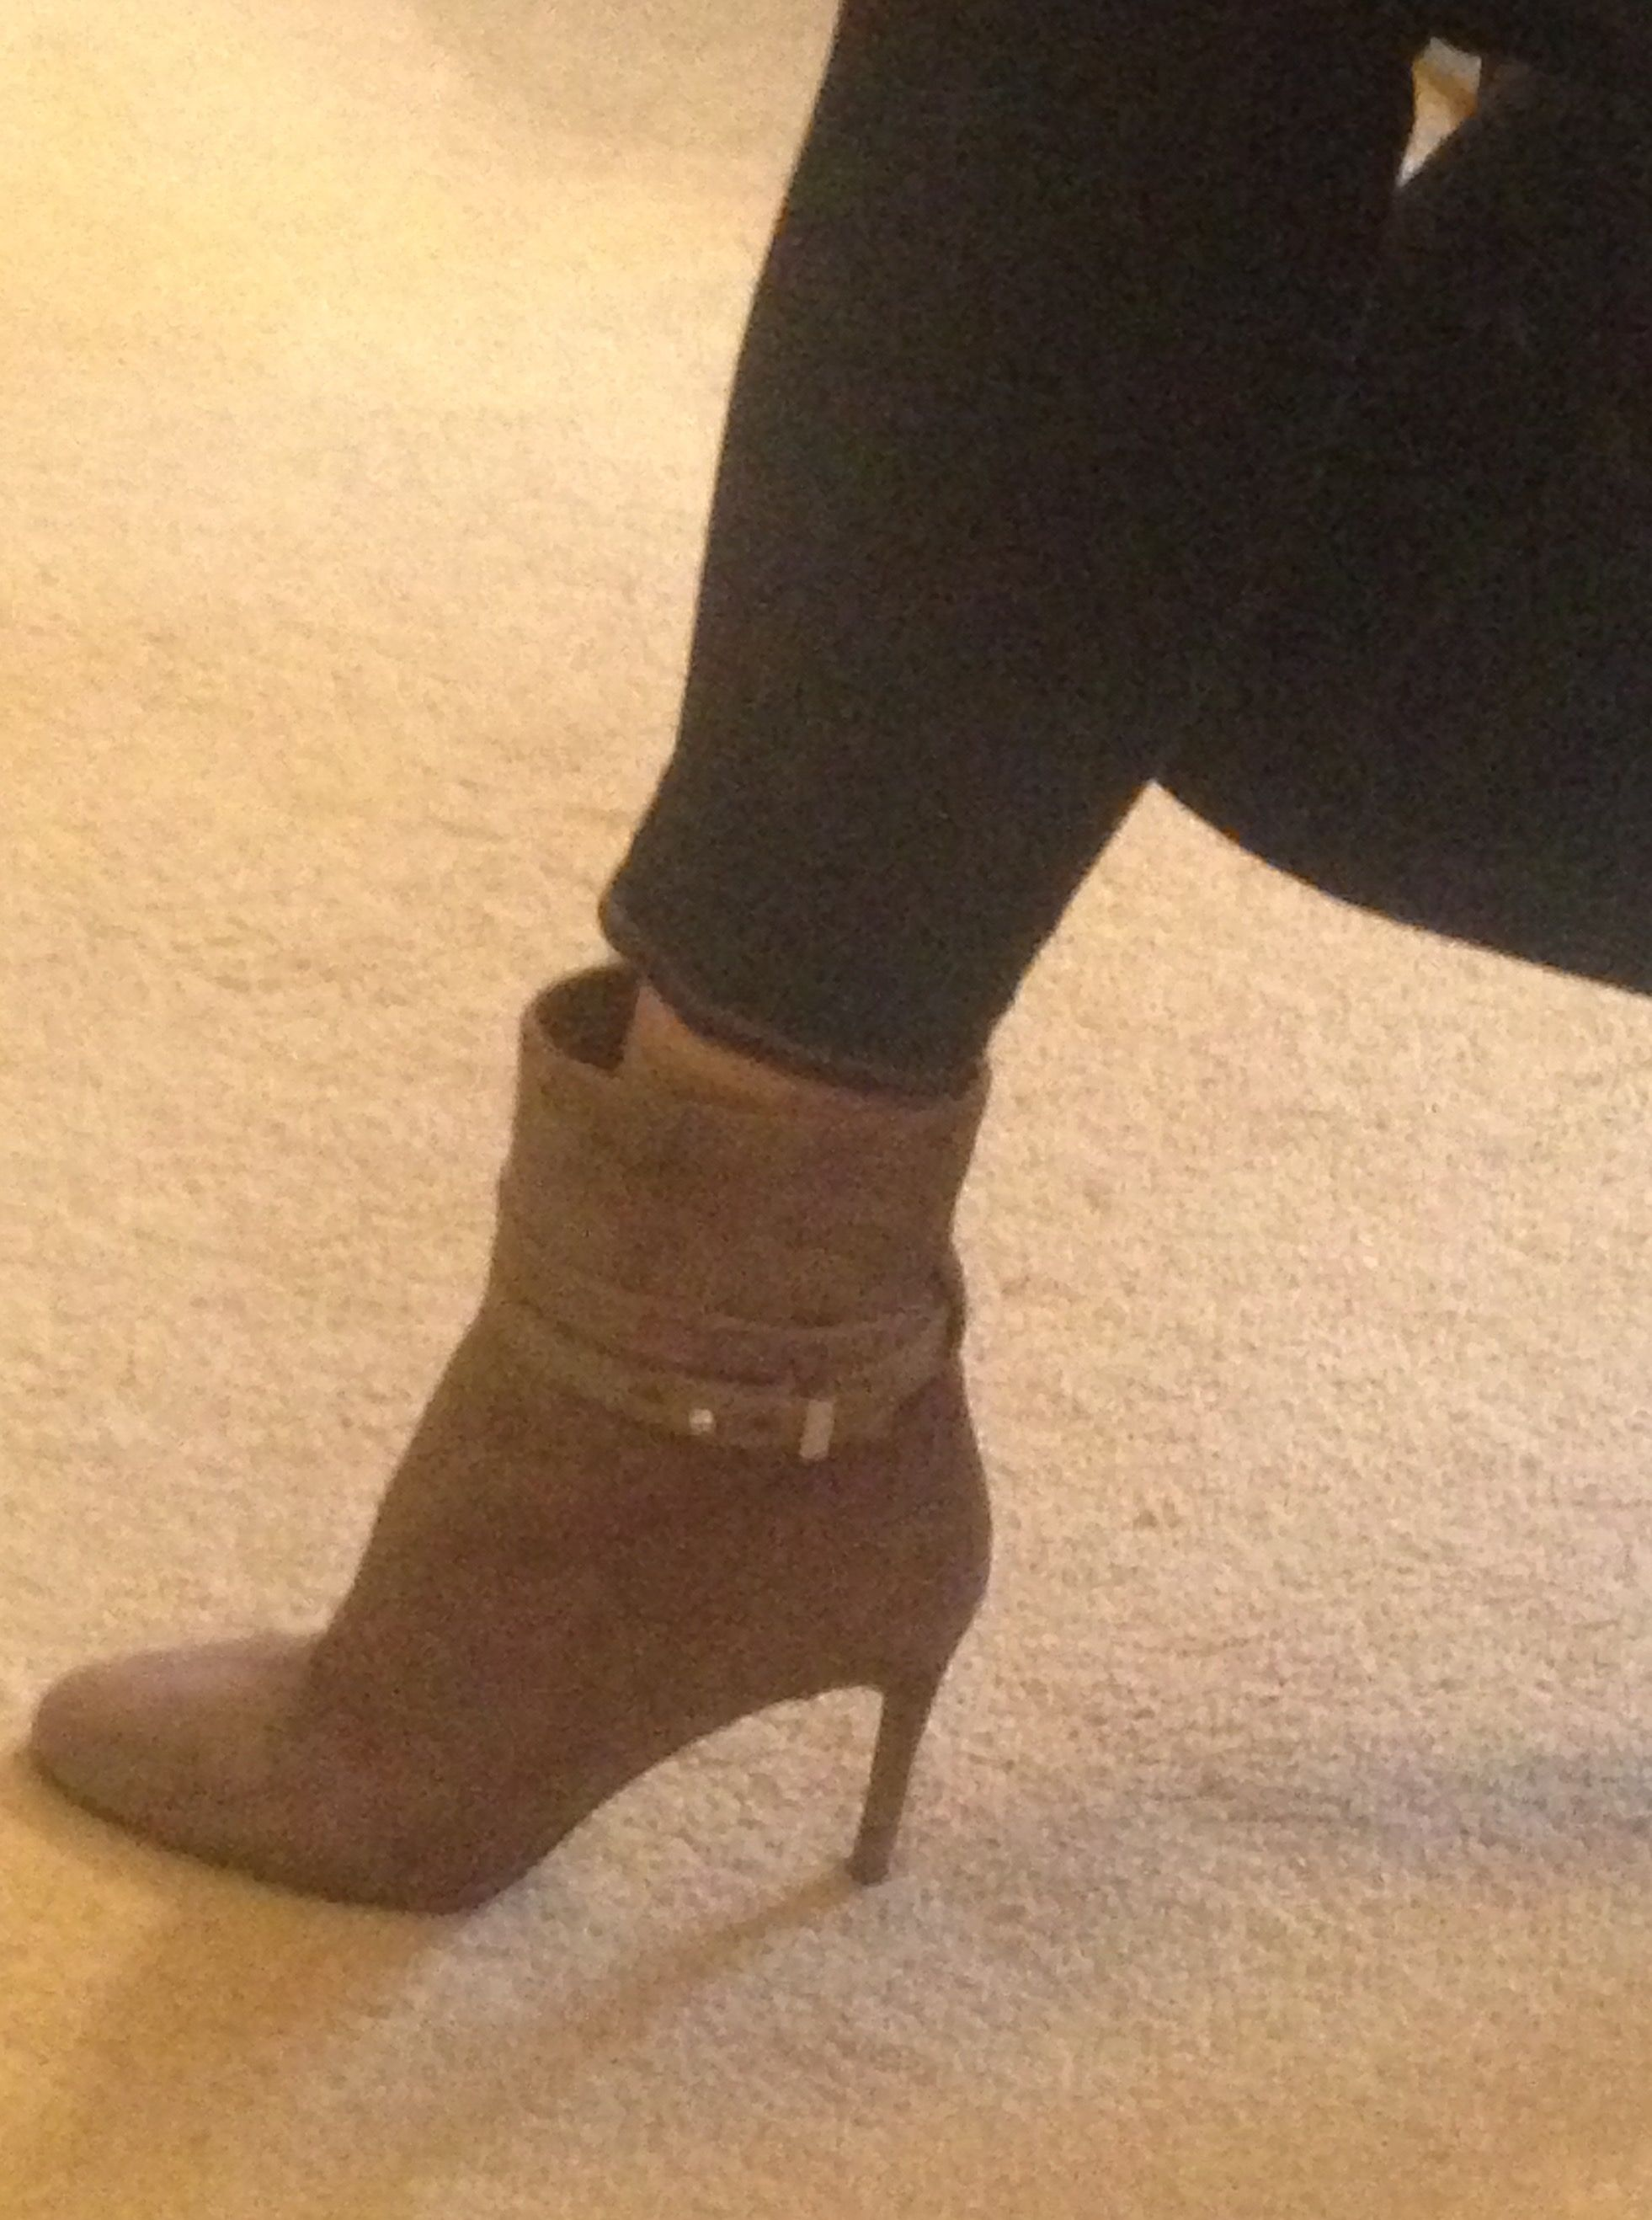 Pair 5: Birthday boots! Vince Camuto light brown suede double strap ankle boots Worn 2/20/2016 with dark skinny jeans, khaki brown tshirt, black suede fringe jacket, blue brown and tan scarf